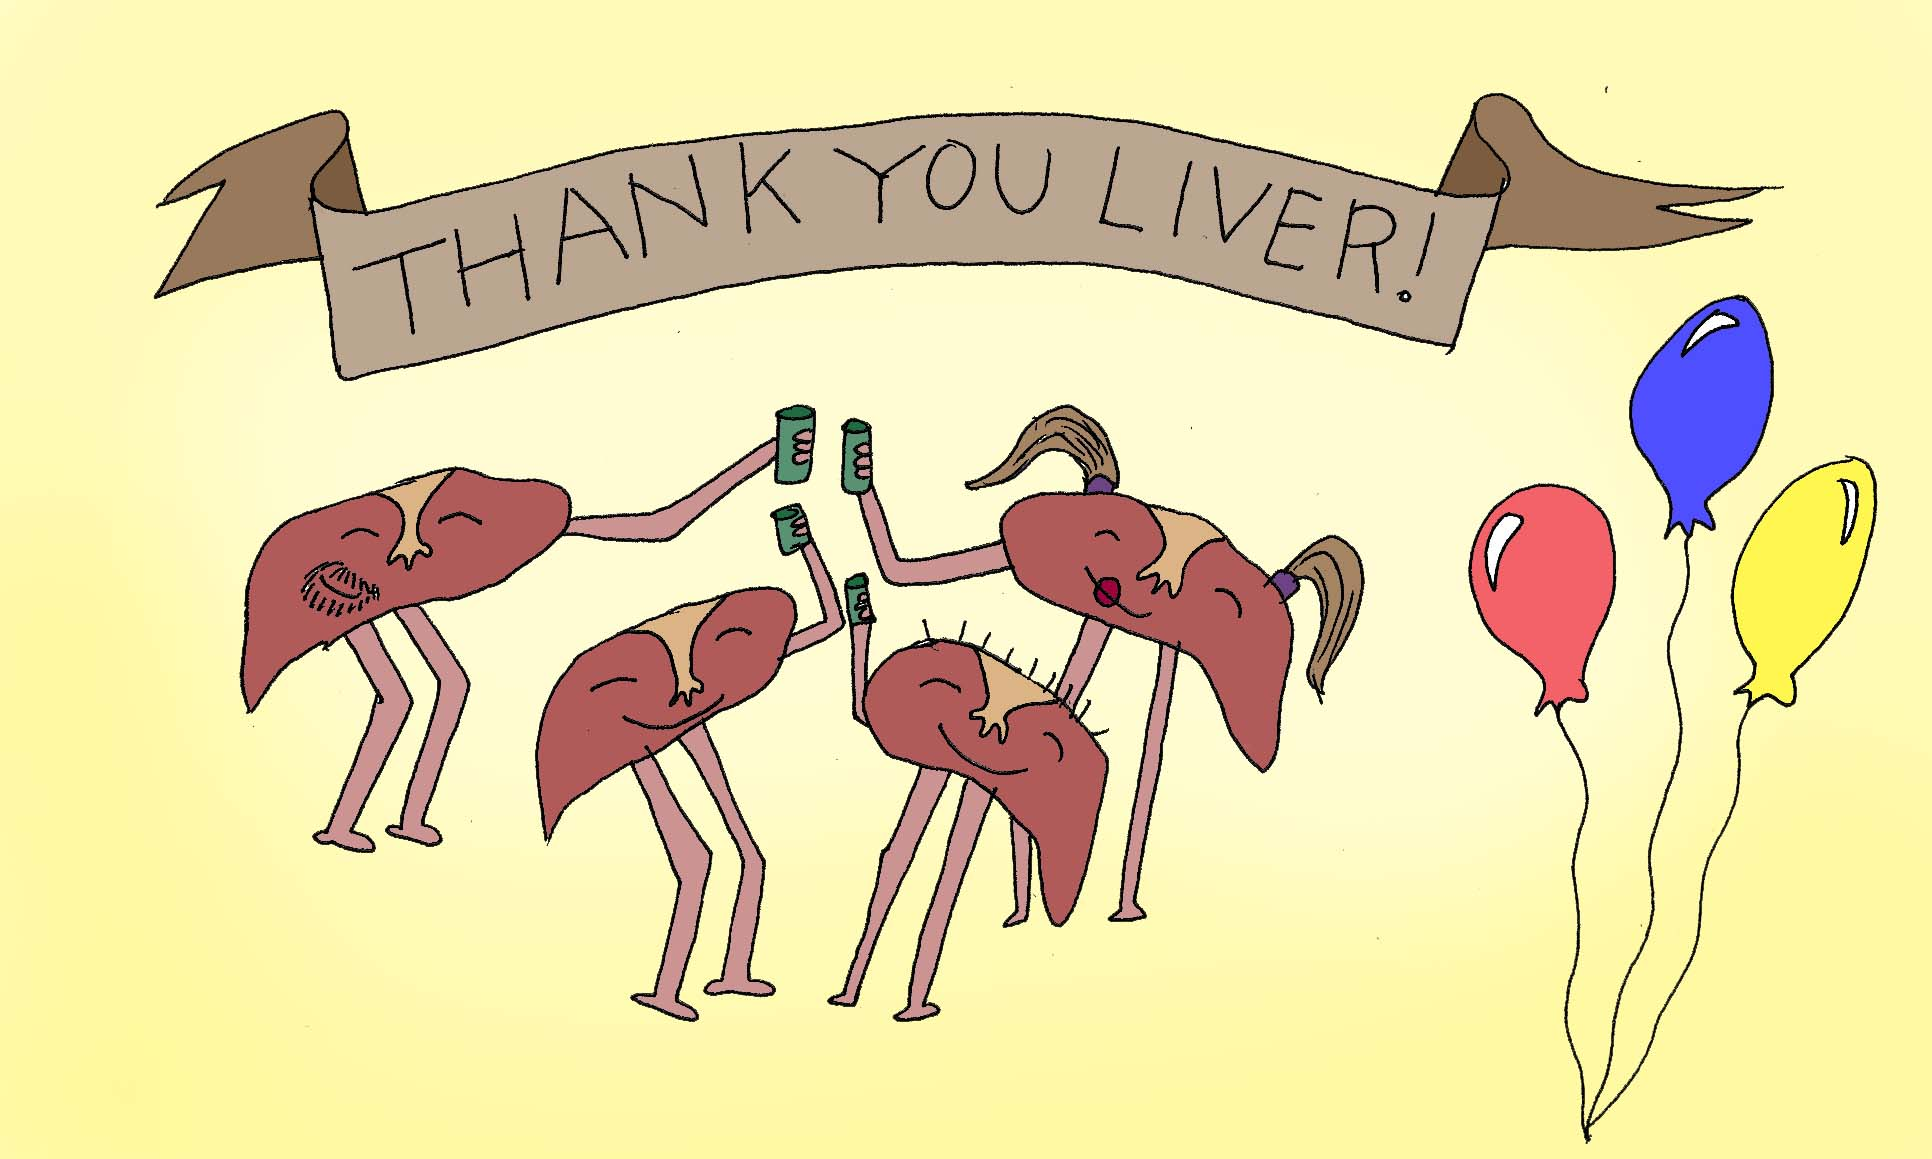 Liver Partytime!